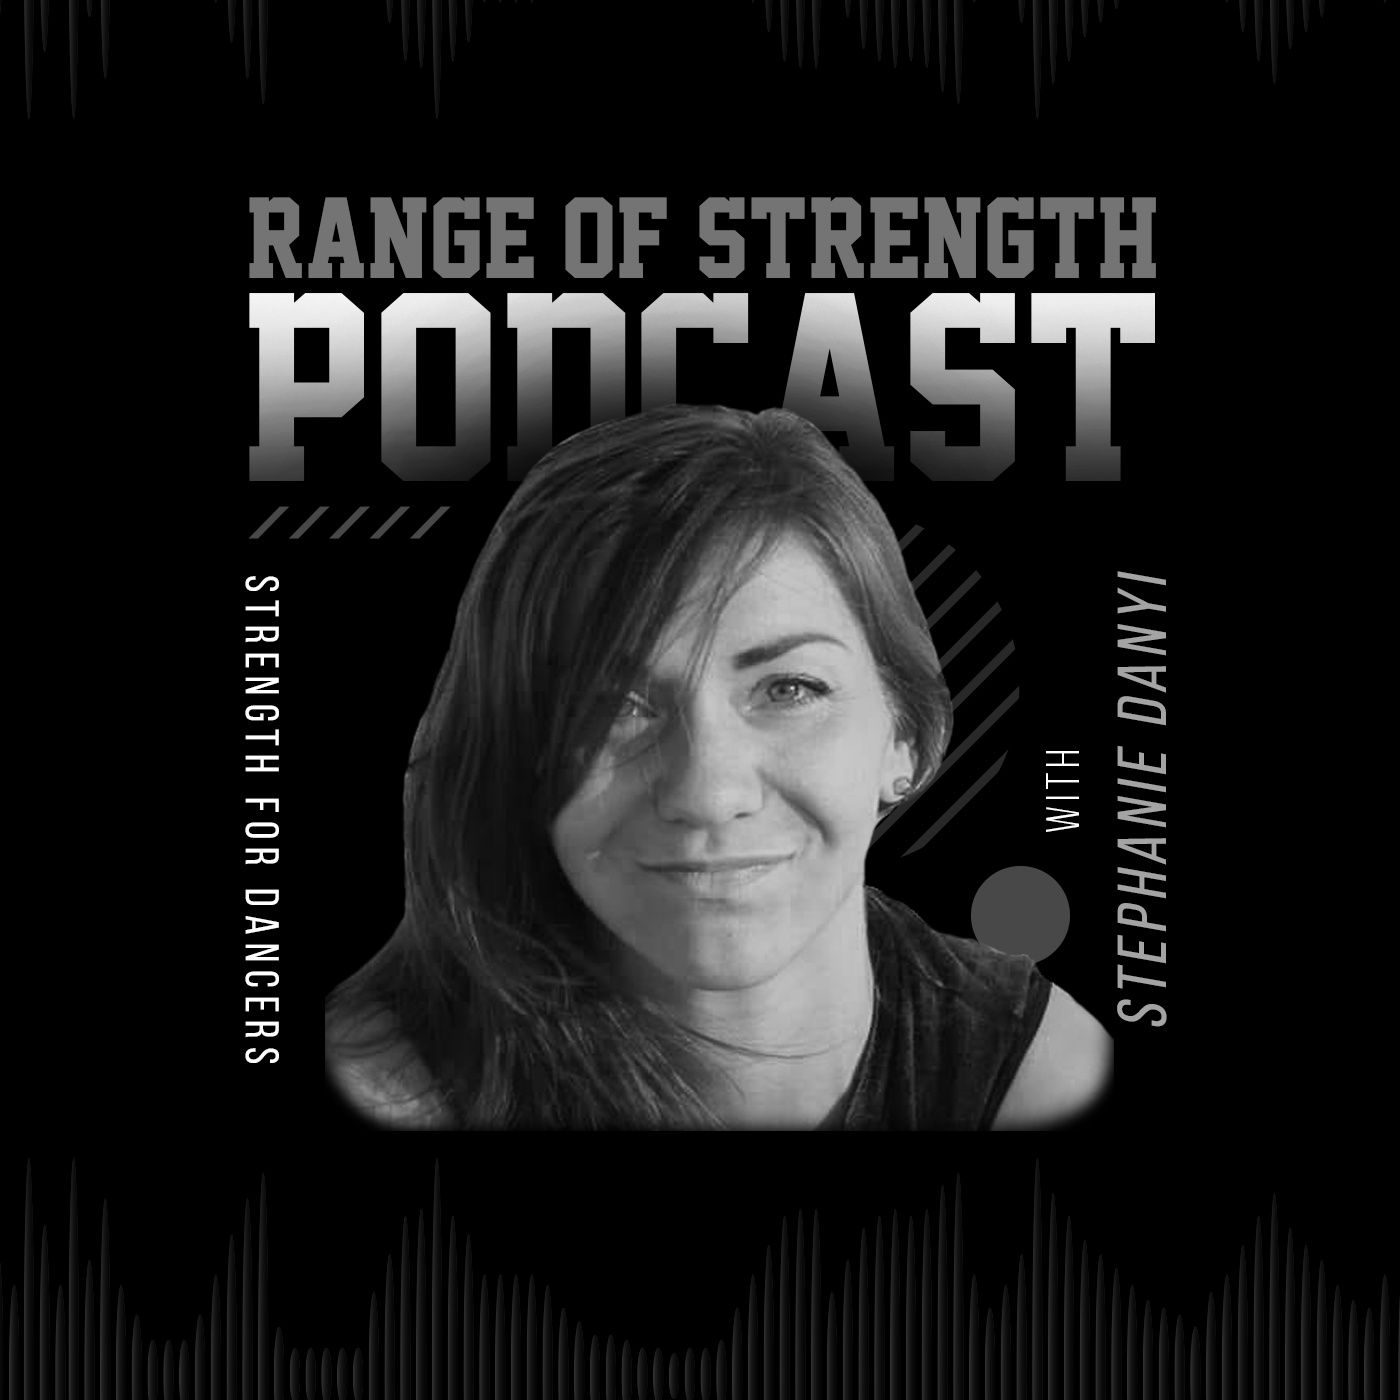 RANGE OF STRENGTH Podcast Episode 21: Strength for Dancers with Stephanie Danyi